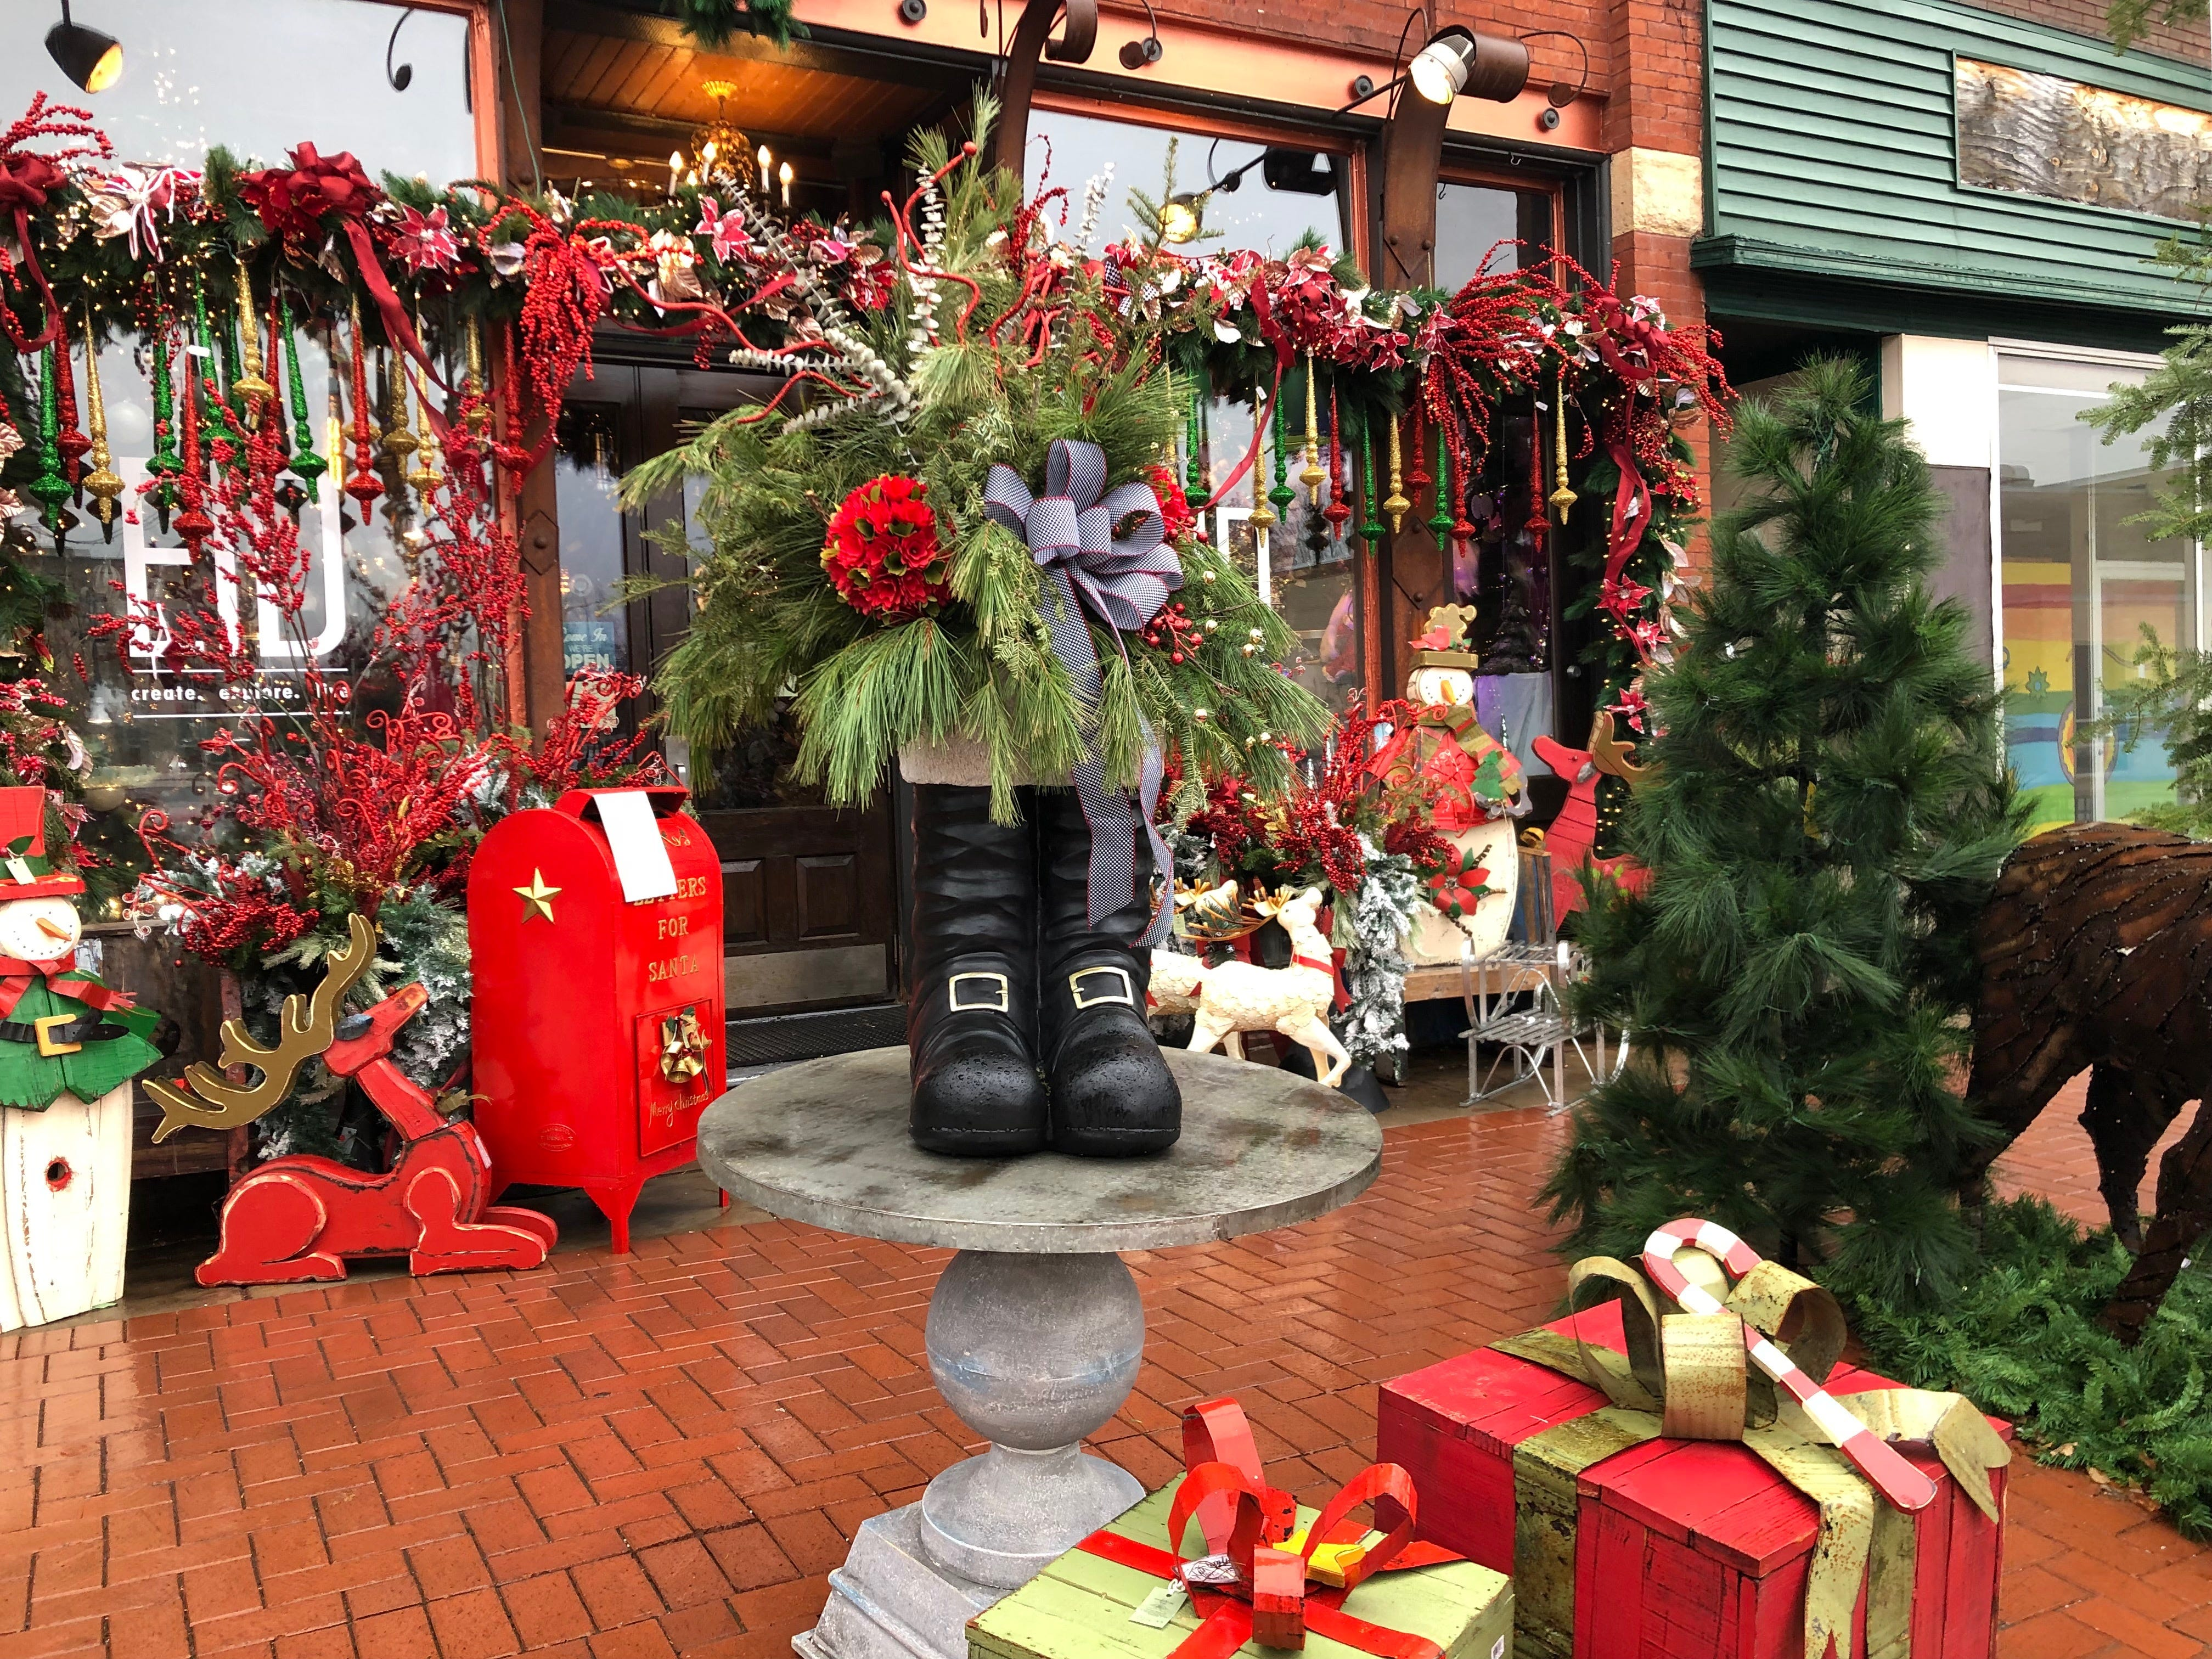 Decorations at Evolutions in Design on Small Business Saturday.